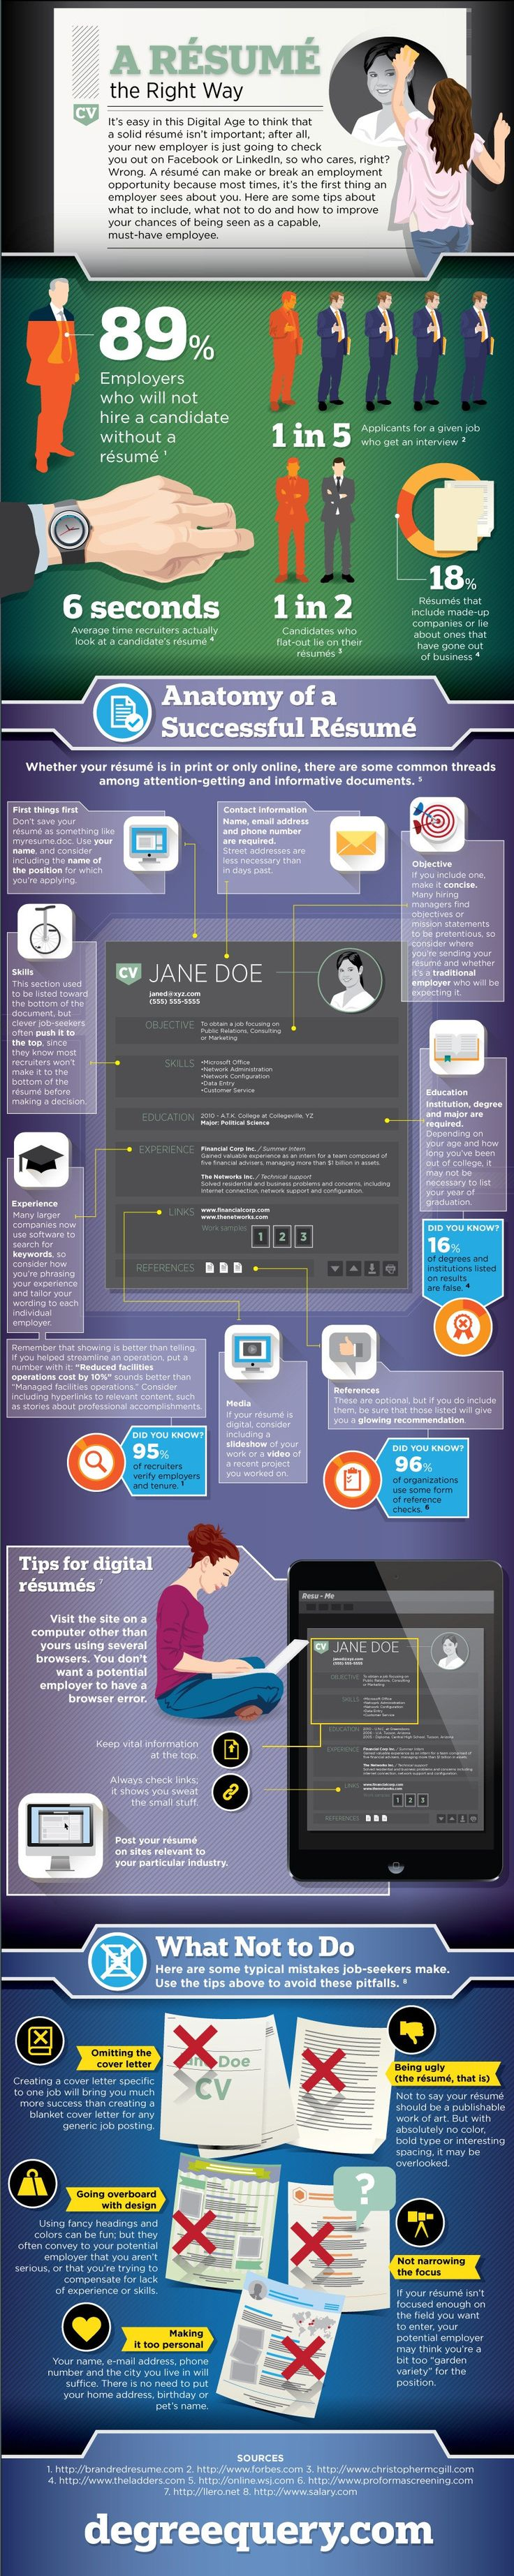 best ideas about employment opportunities resume a resume the right way infographic